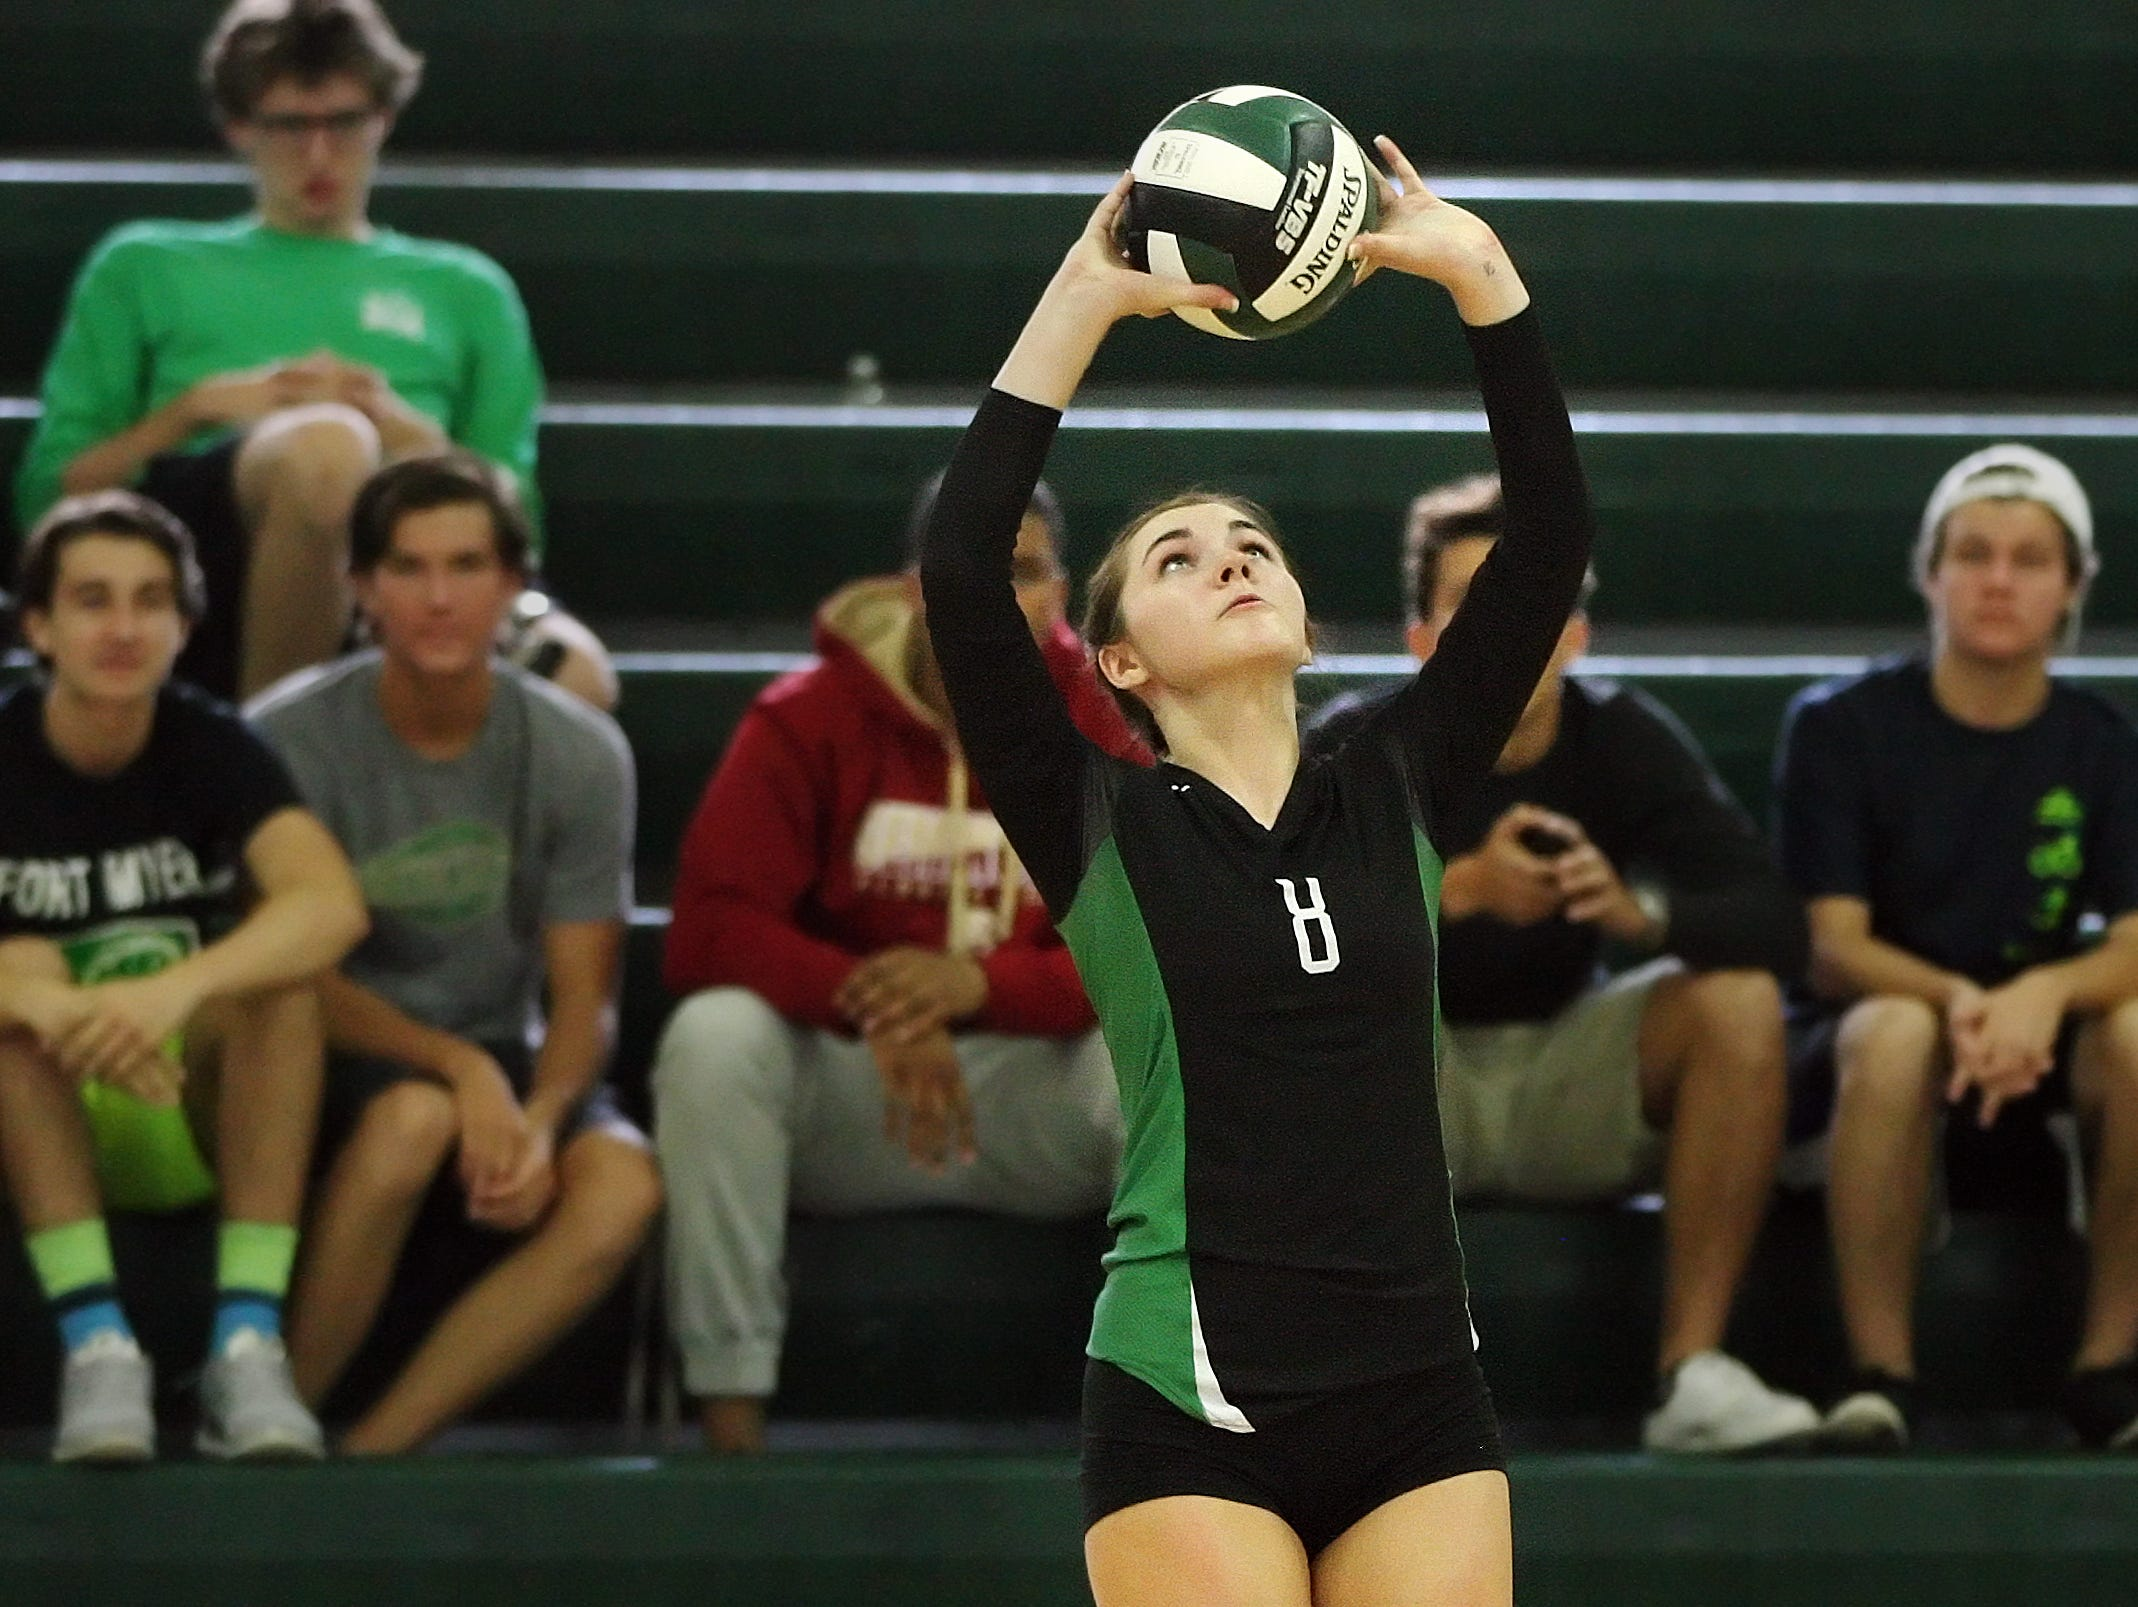 Fort Myers High School's Erin Gear sets the ball against Barron Collier in the Region 6A-3 semifinal volleyball game Saturday at Fort Myers High School. Fort Myers beat Barron Collier 3-0.